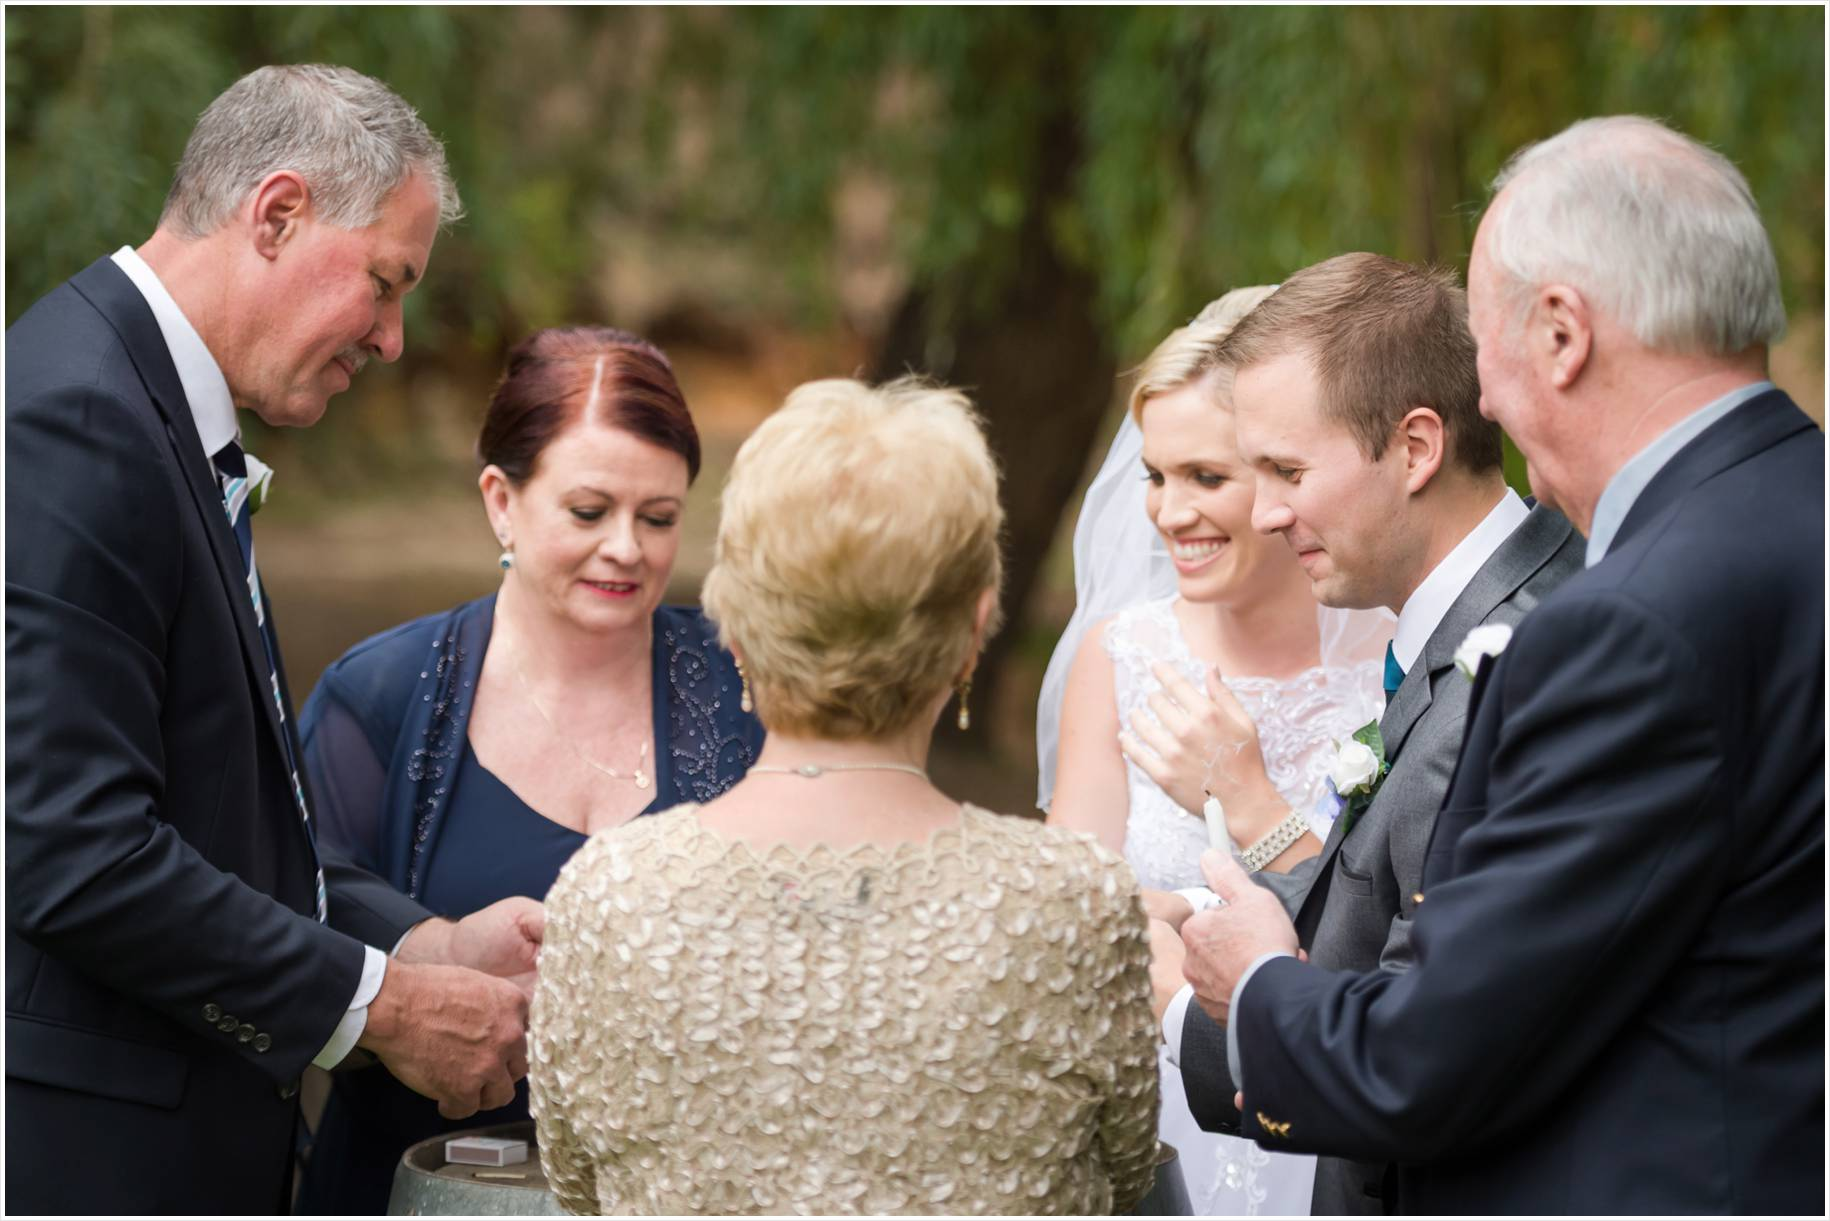 Parents joining couple getting married